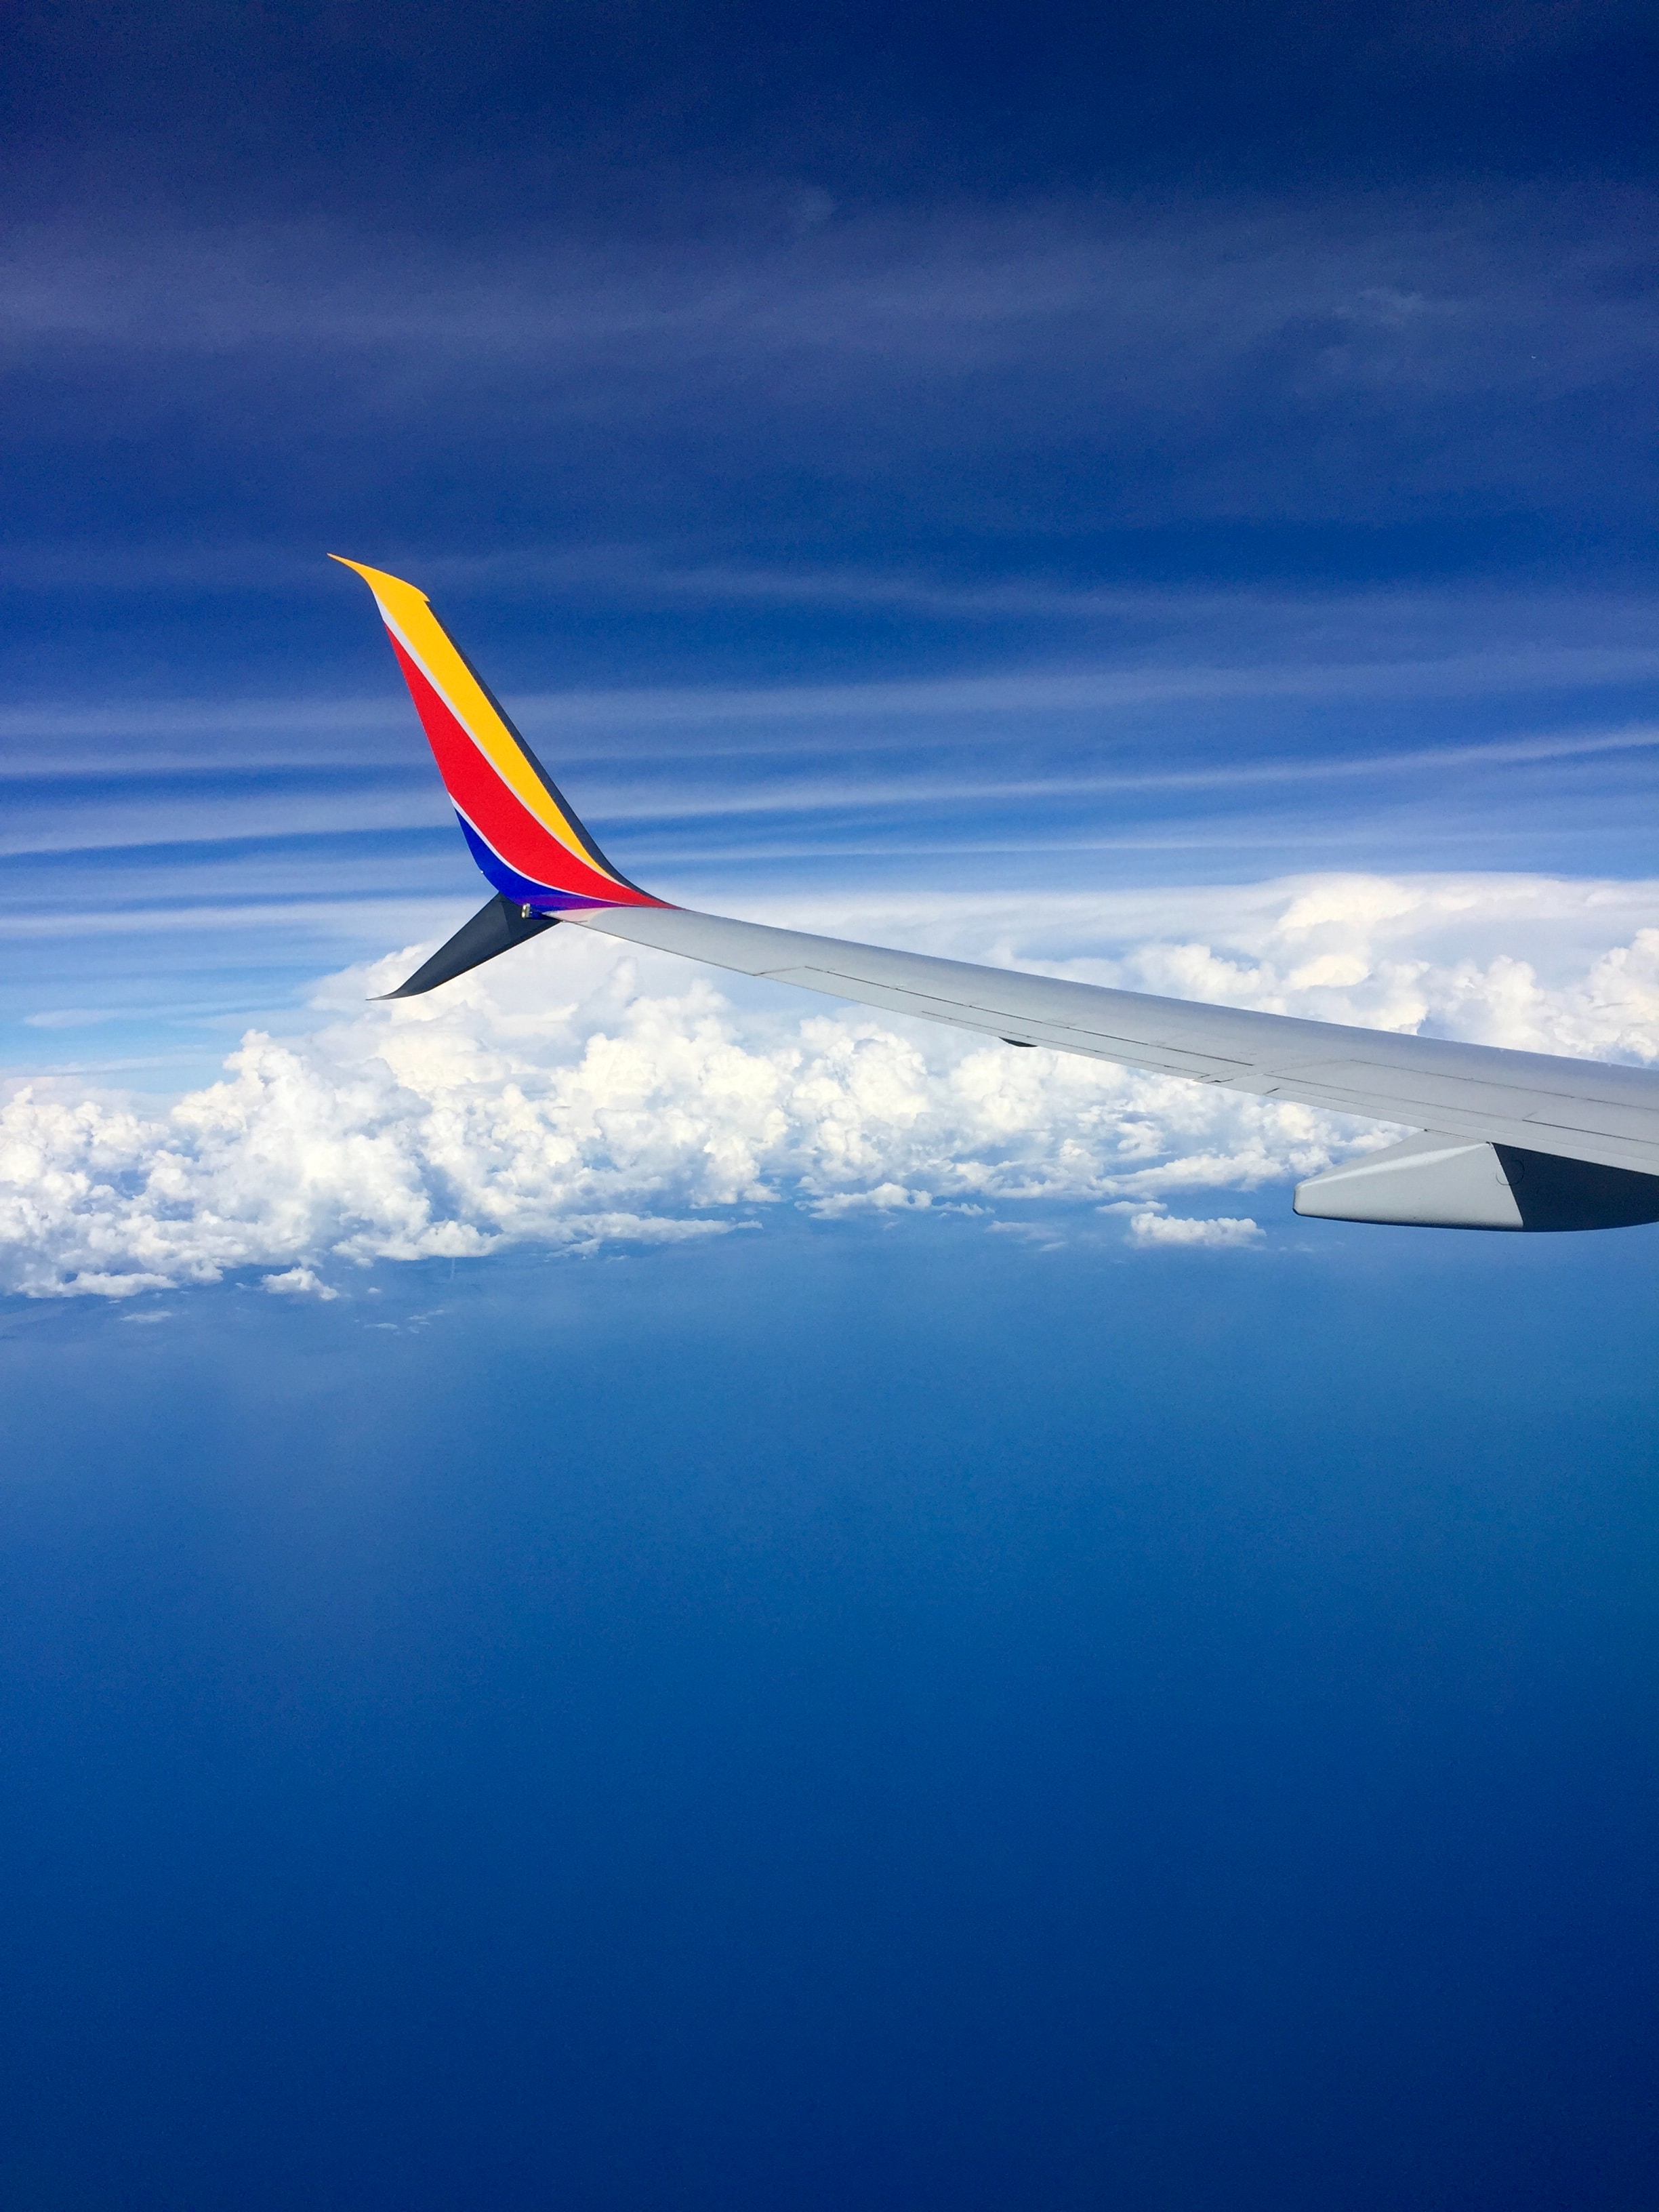 Case Study #1 on Differentiation: Southwest Airlines